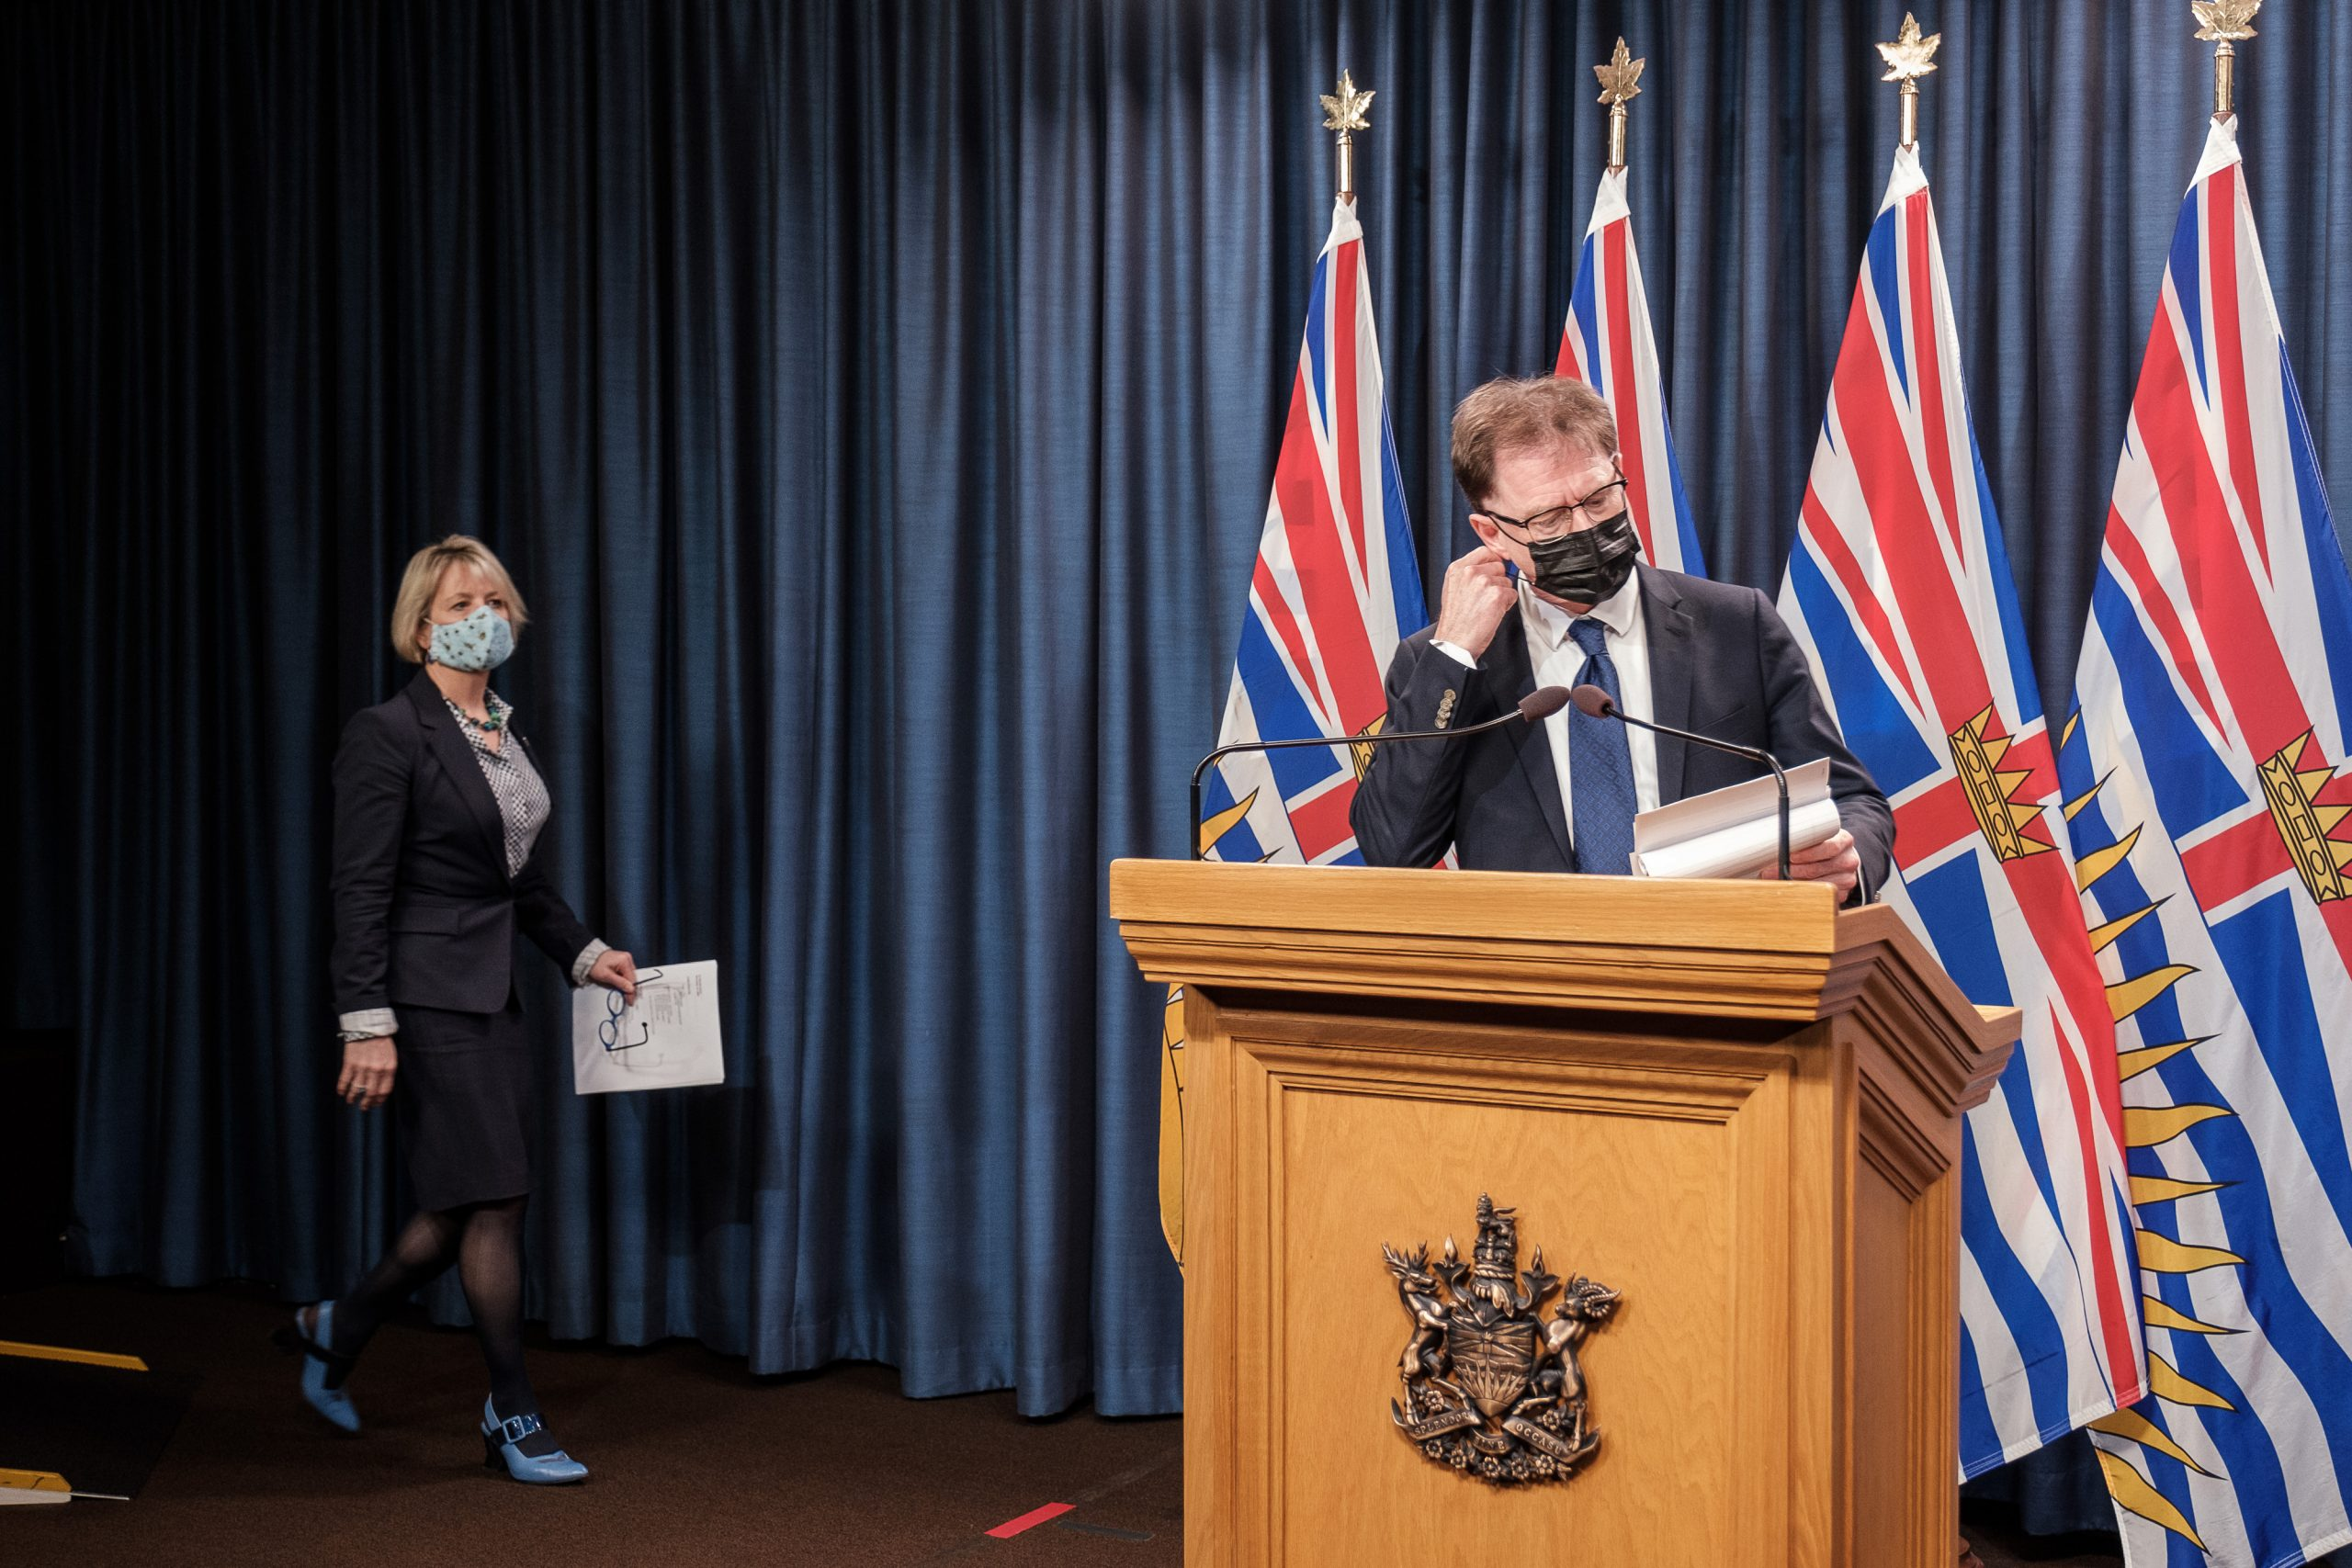 Adrian Dix stands at a podium as he starts to take off his black mask that is covering his face. Bonnie Henry walks towards the podium to the left as she wears a bright blue mask